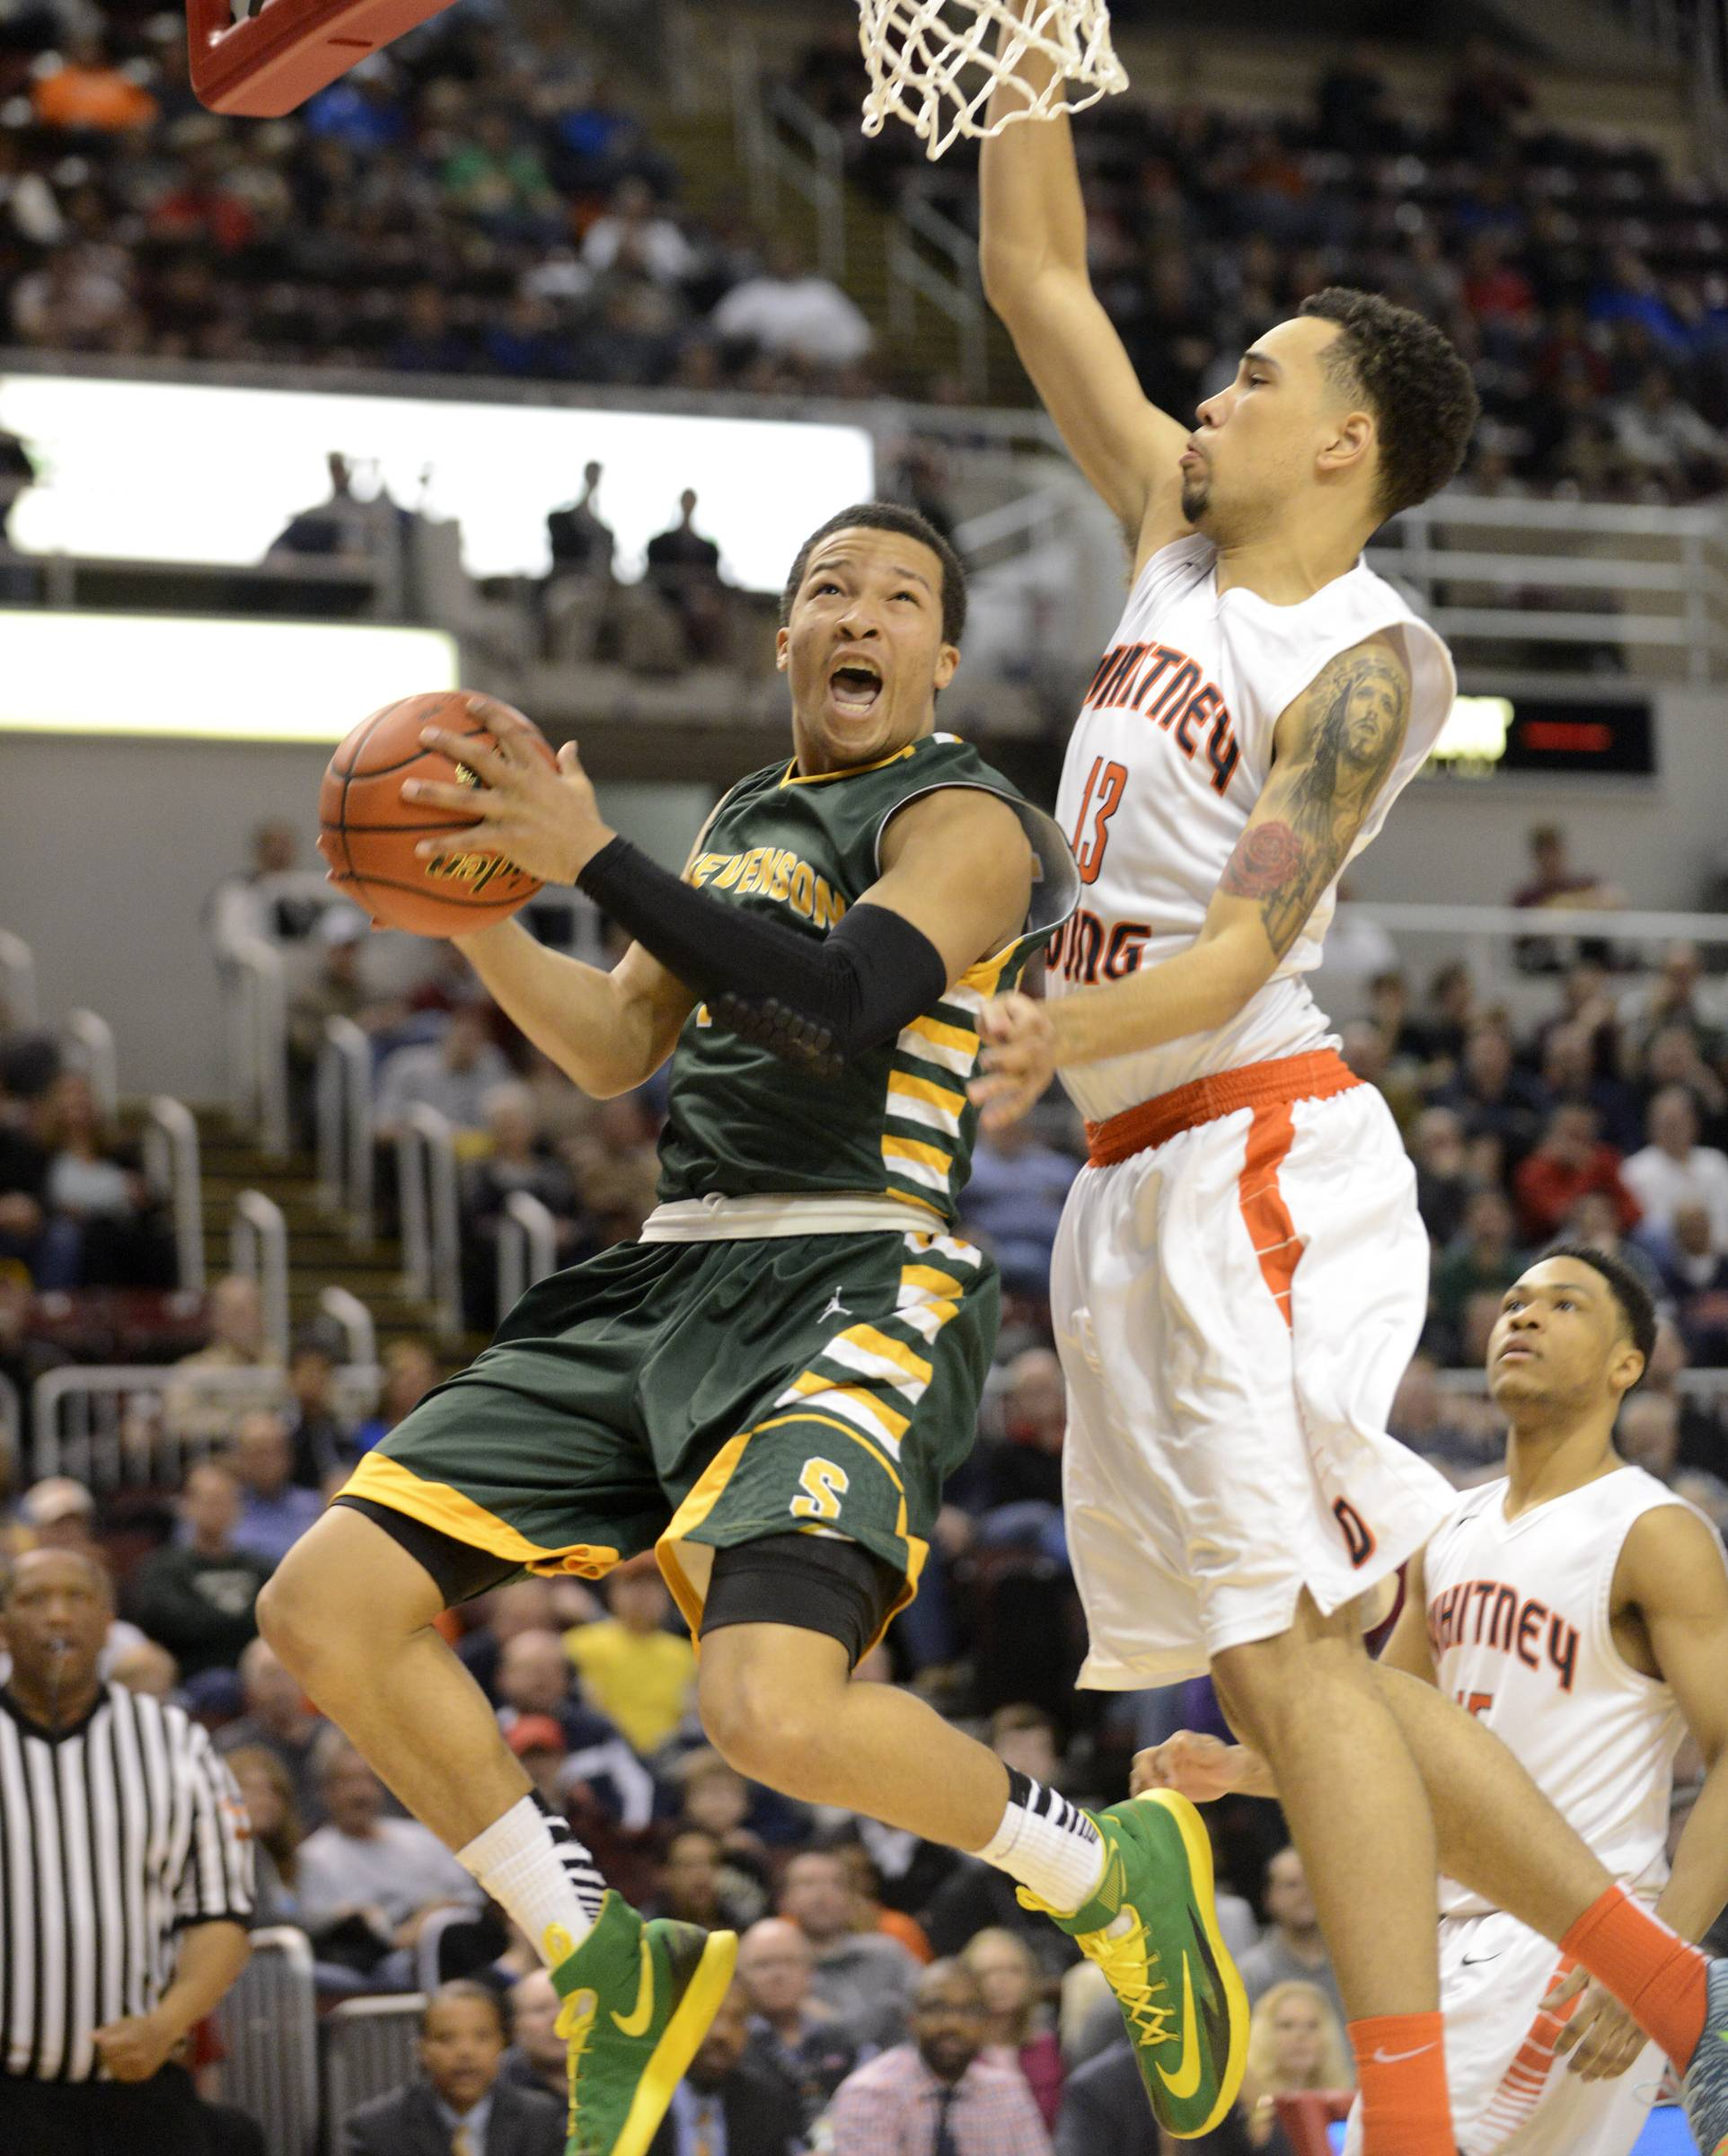 Stevenson's Jalen Brunson scores the first points of the game.